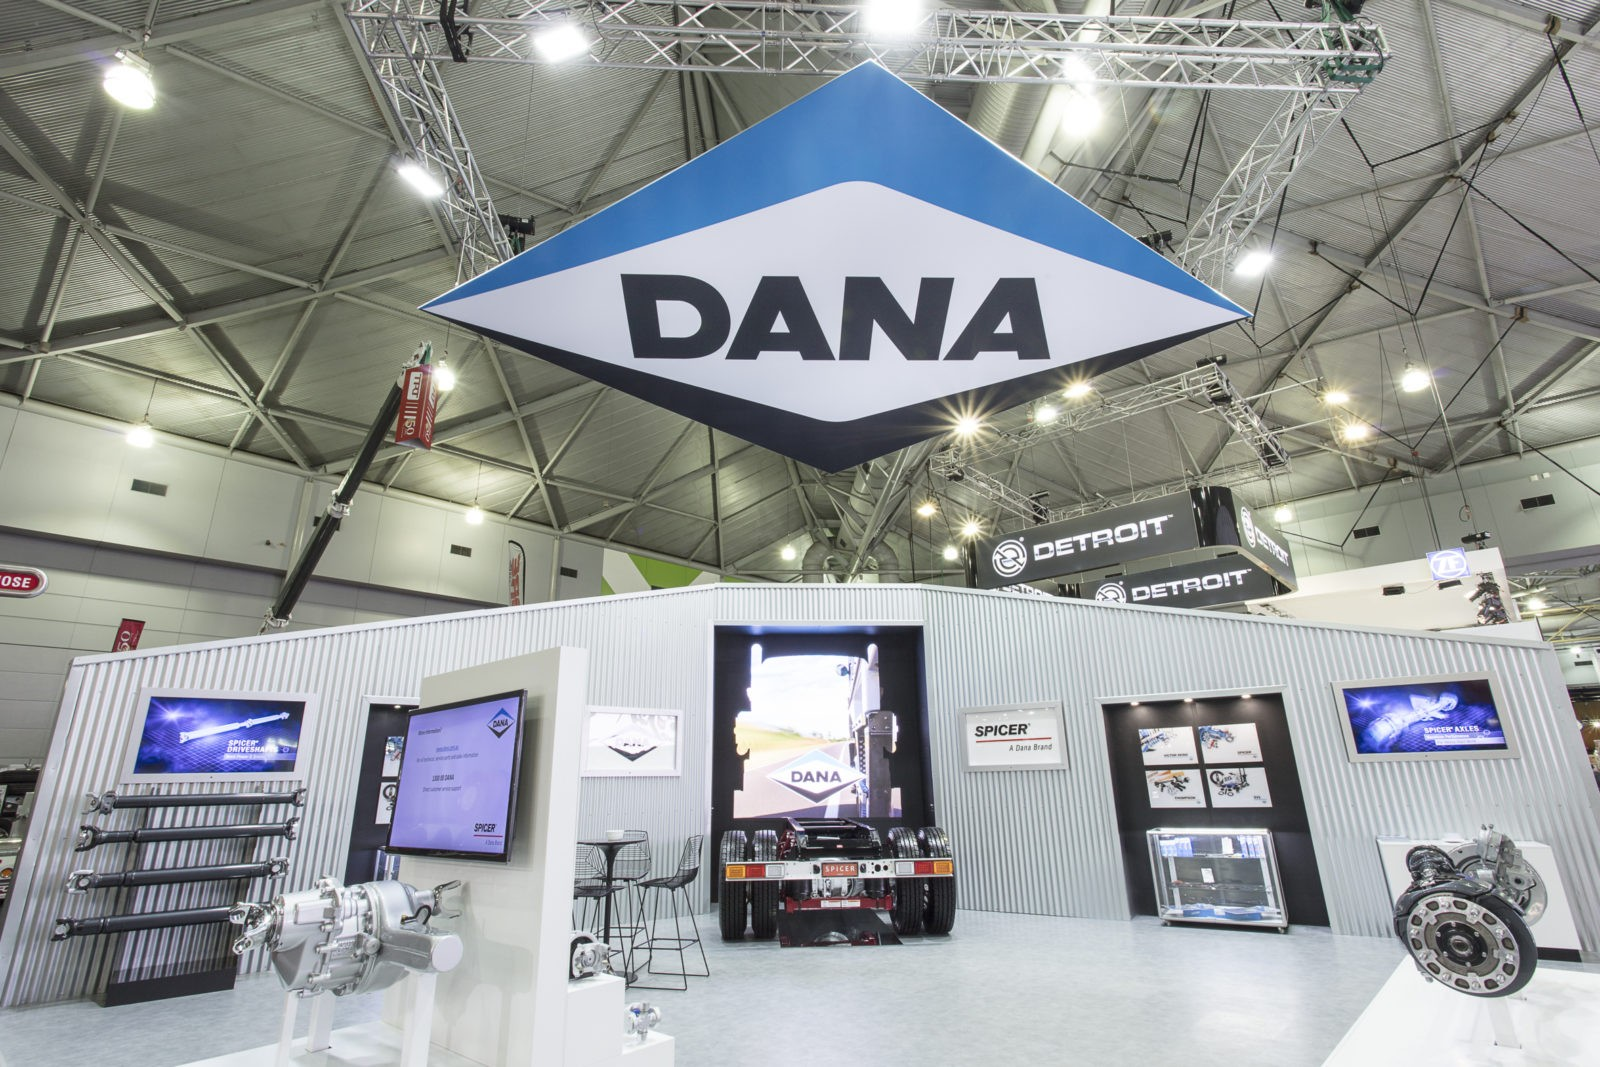 Importance of filming and photo's at events and exhibitions